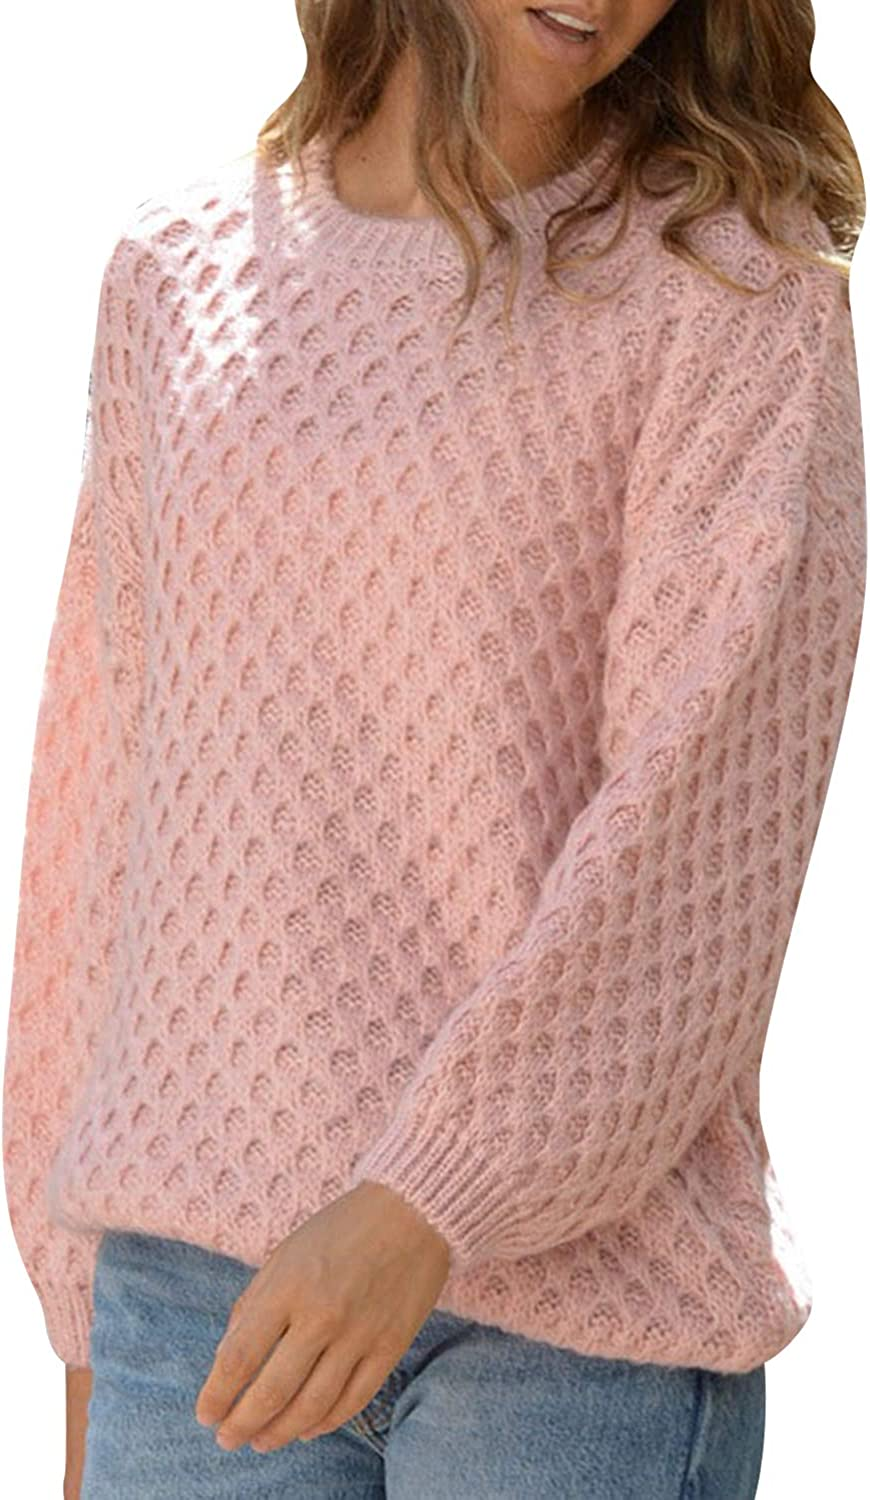 Simplee Women's Crew Neck Loose Fit Knit Waffle Pullover Sweater Casual Jumper Tops